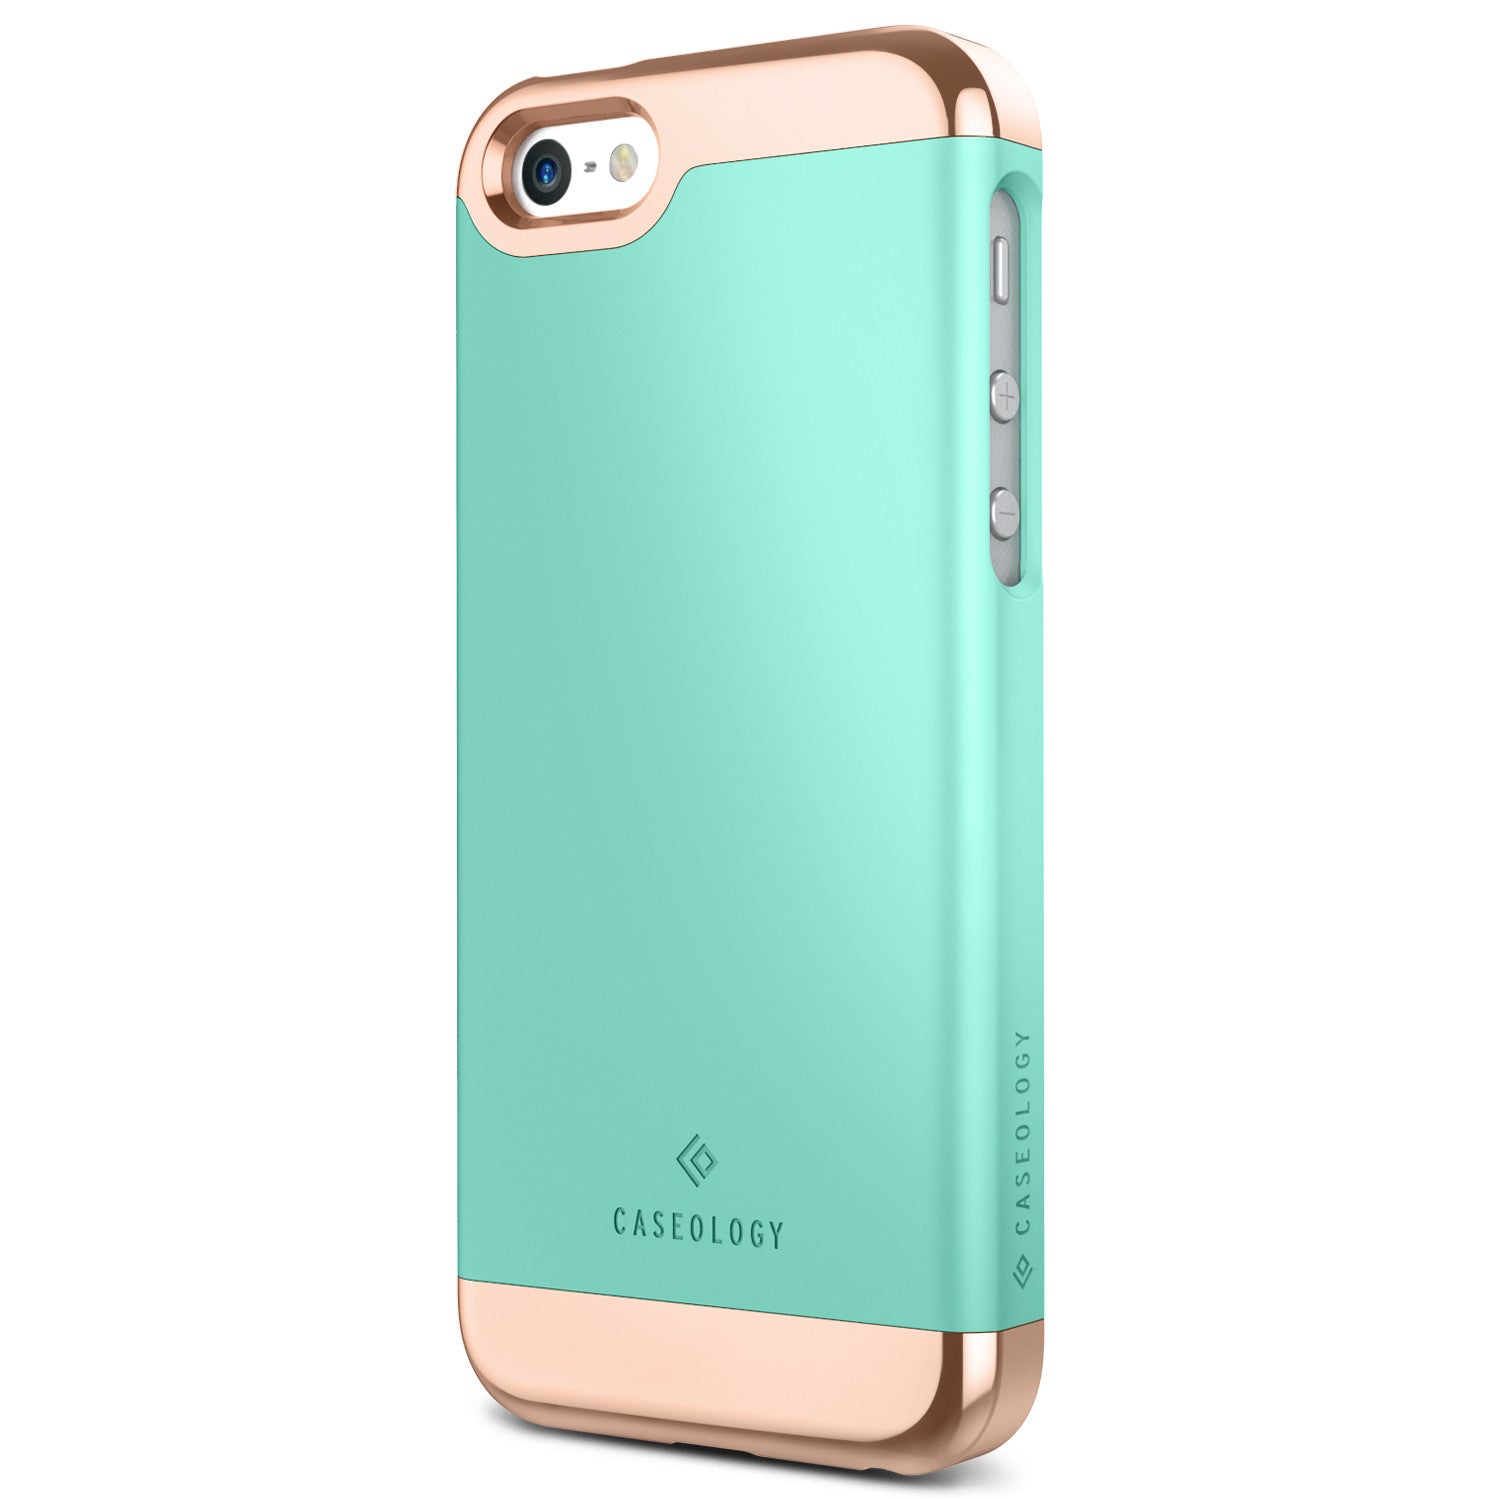 Caseology iPhone SE Case Savoy Series in Turquoise Mint